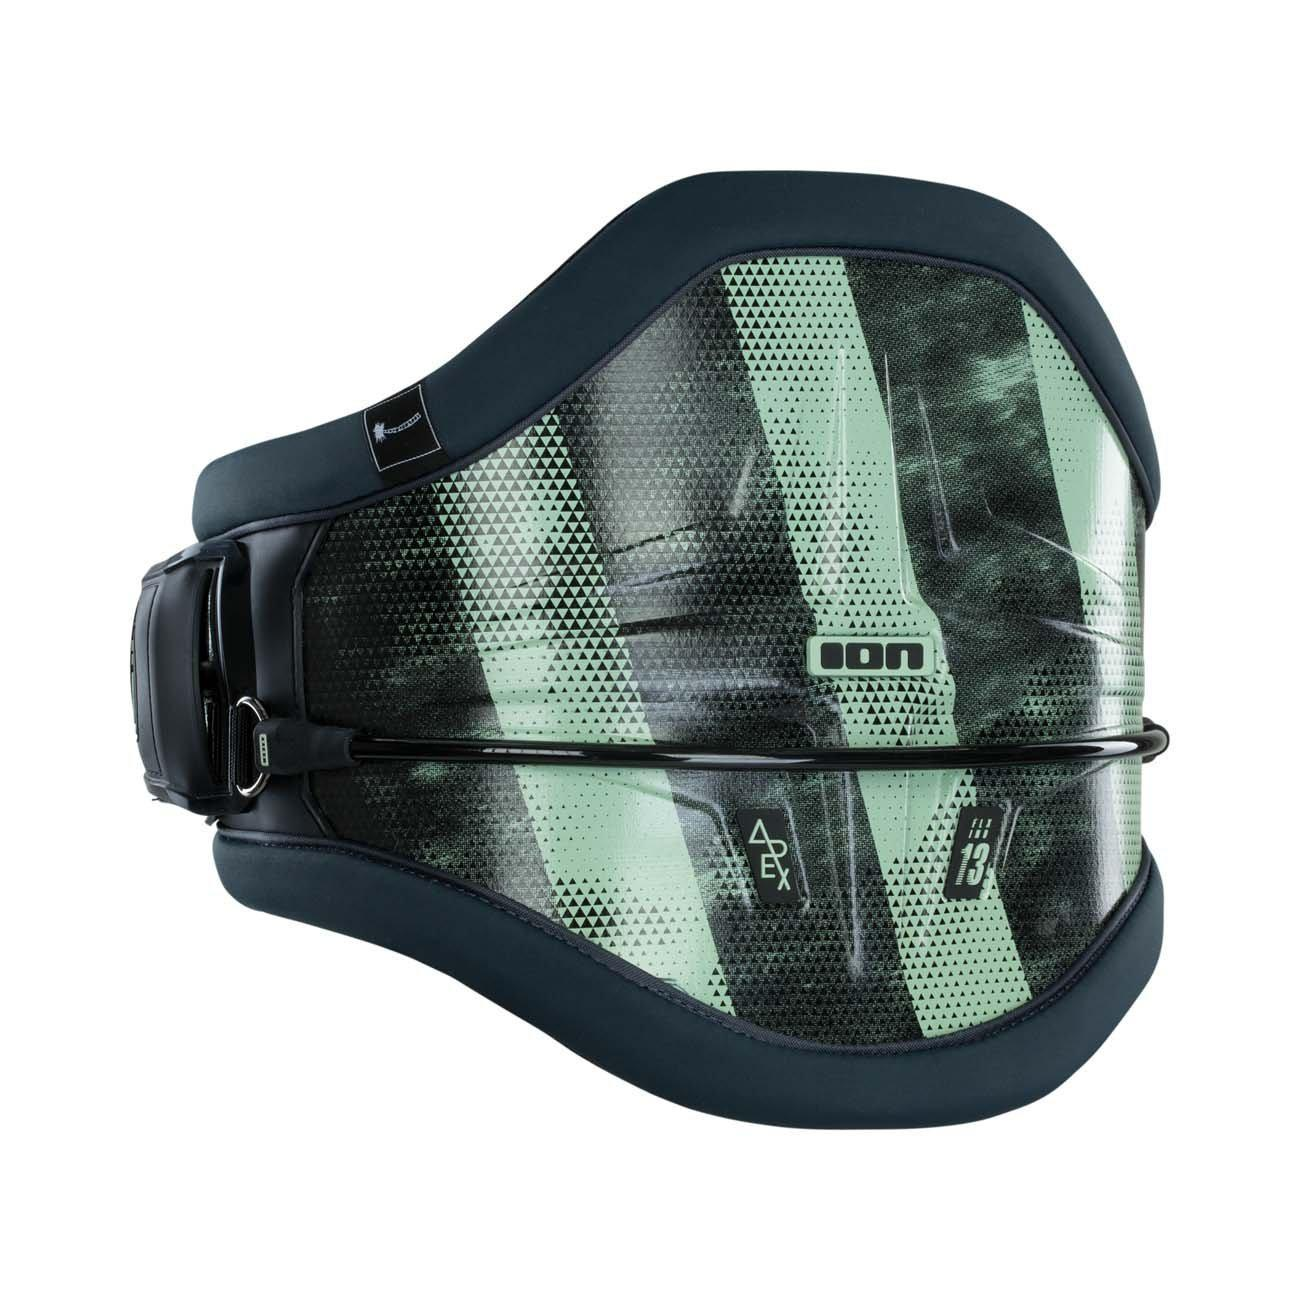 2020 Ion Apex Curv 13 Kiteboard Waist Harness-Big Winds